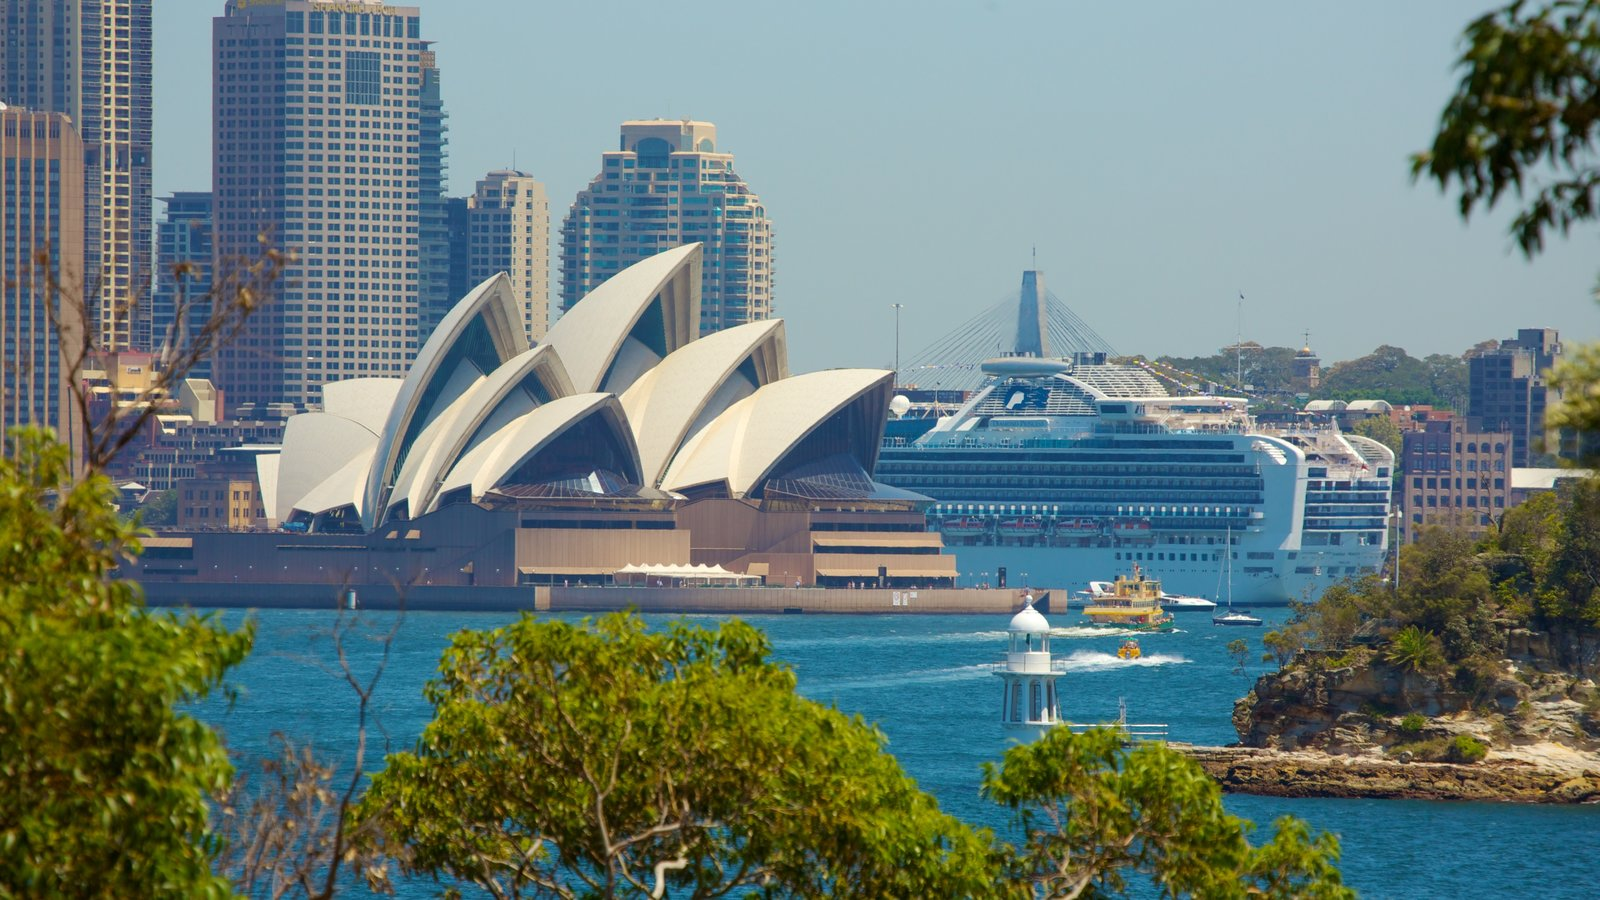 Sydney showing theater scenes, general coastal views and a city